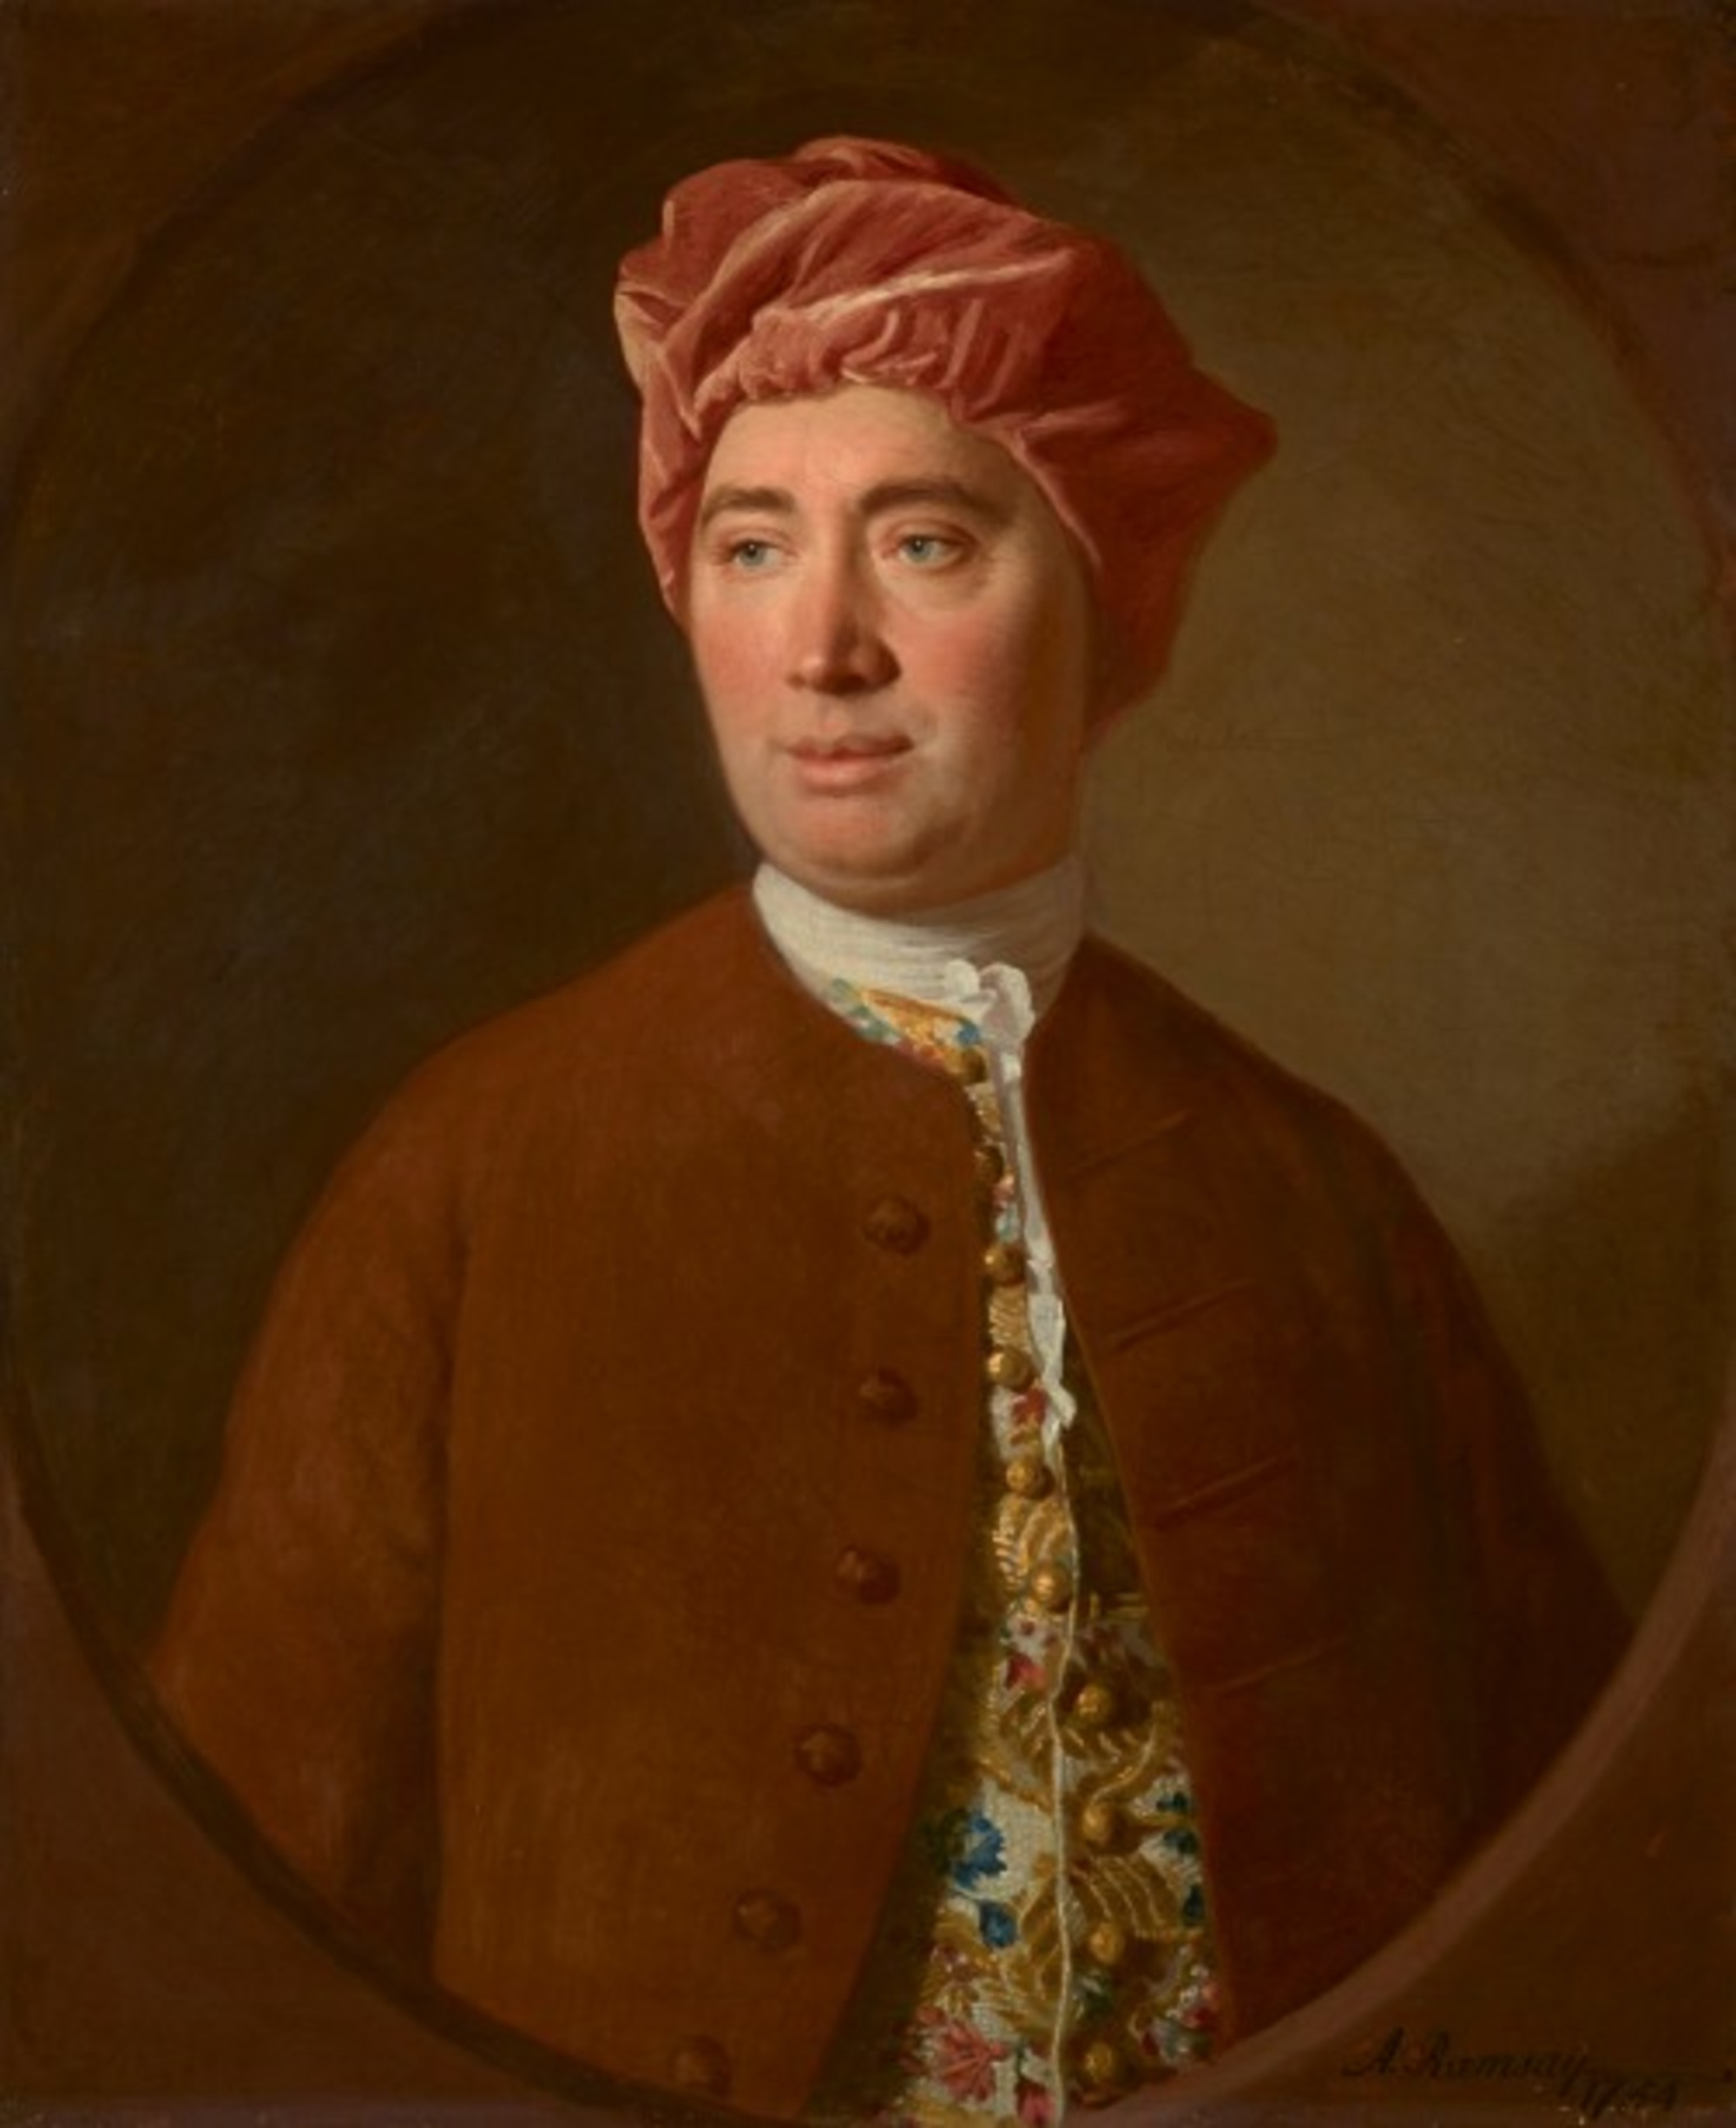 Painting-of-David-Hume.jpg